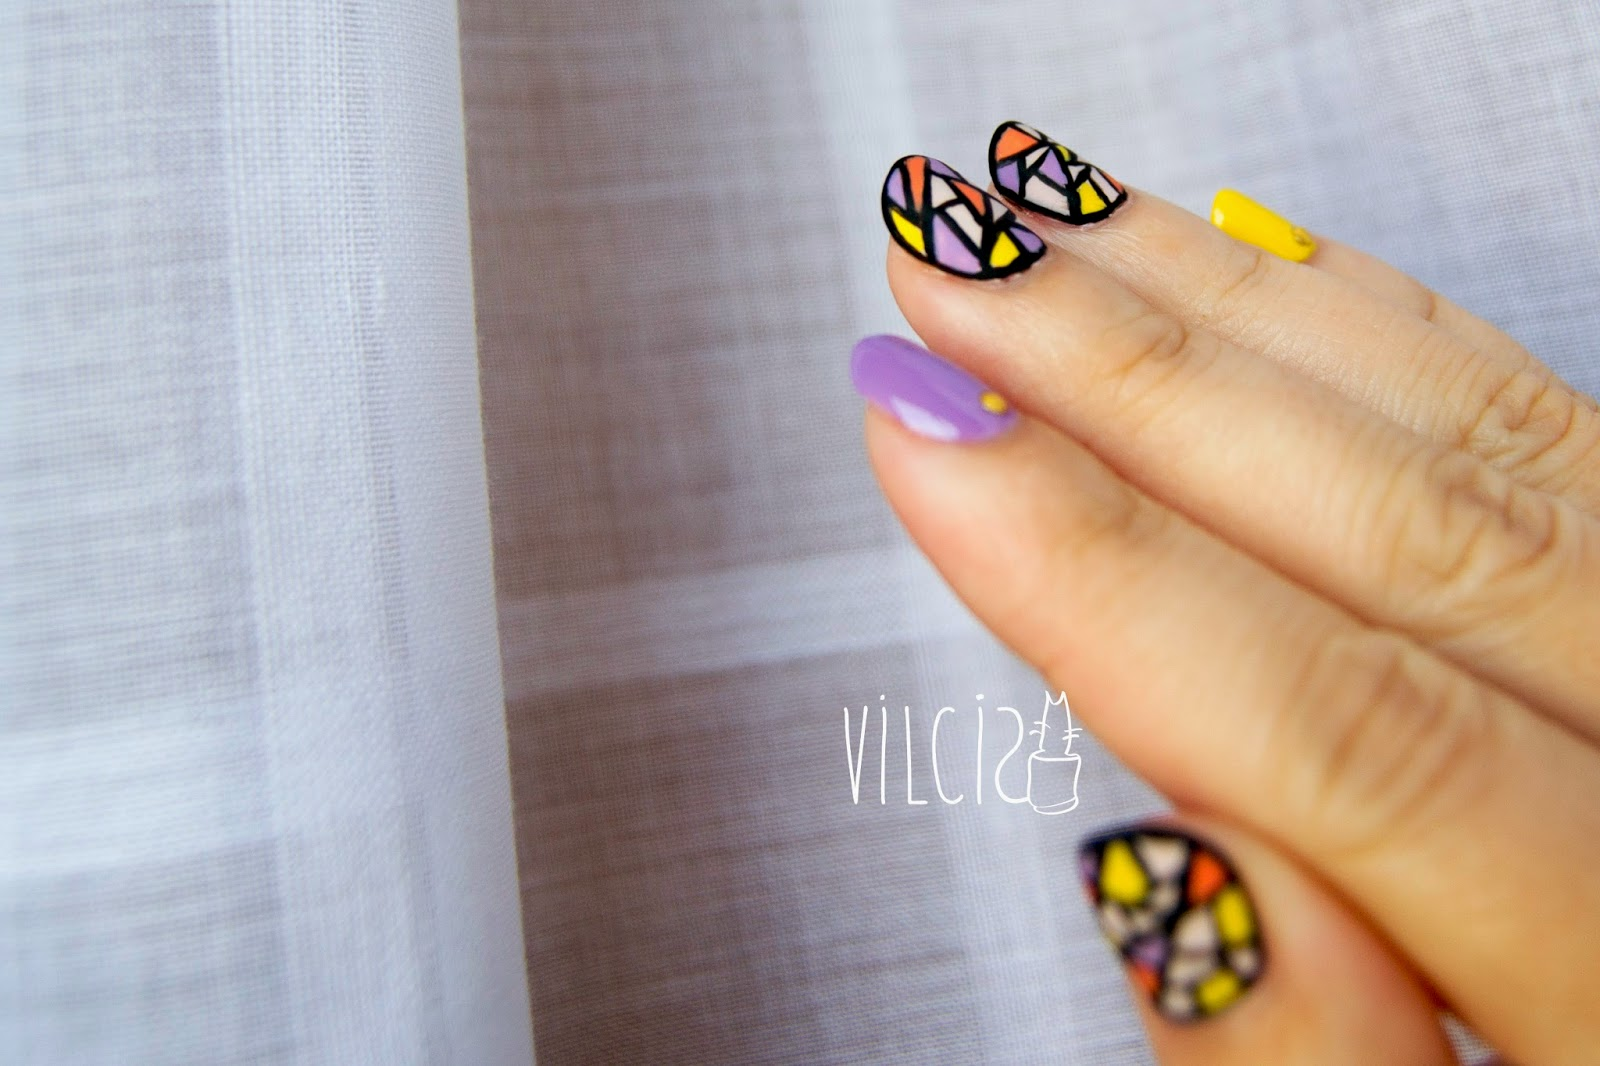 Diseño de uñas VIDRIERA stained glass vilcis